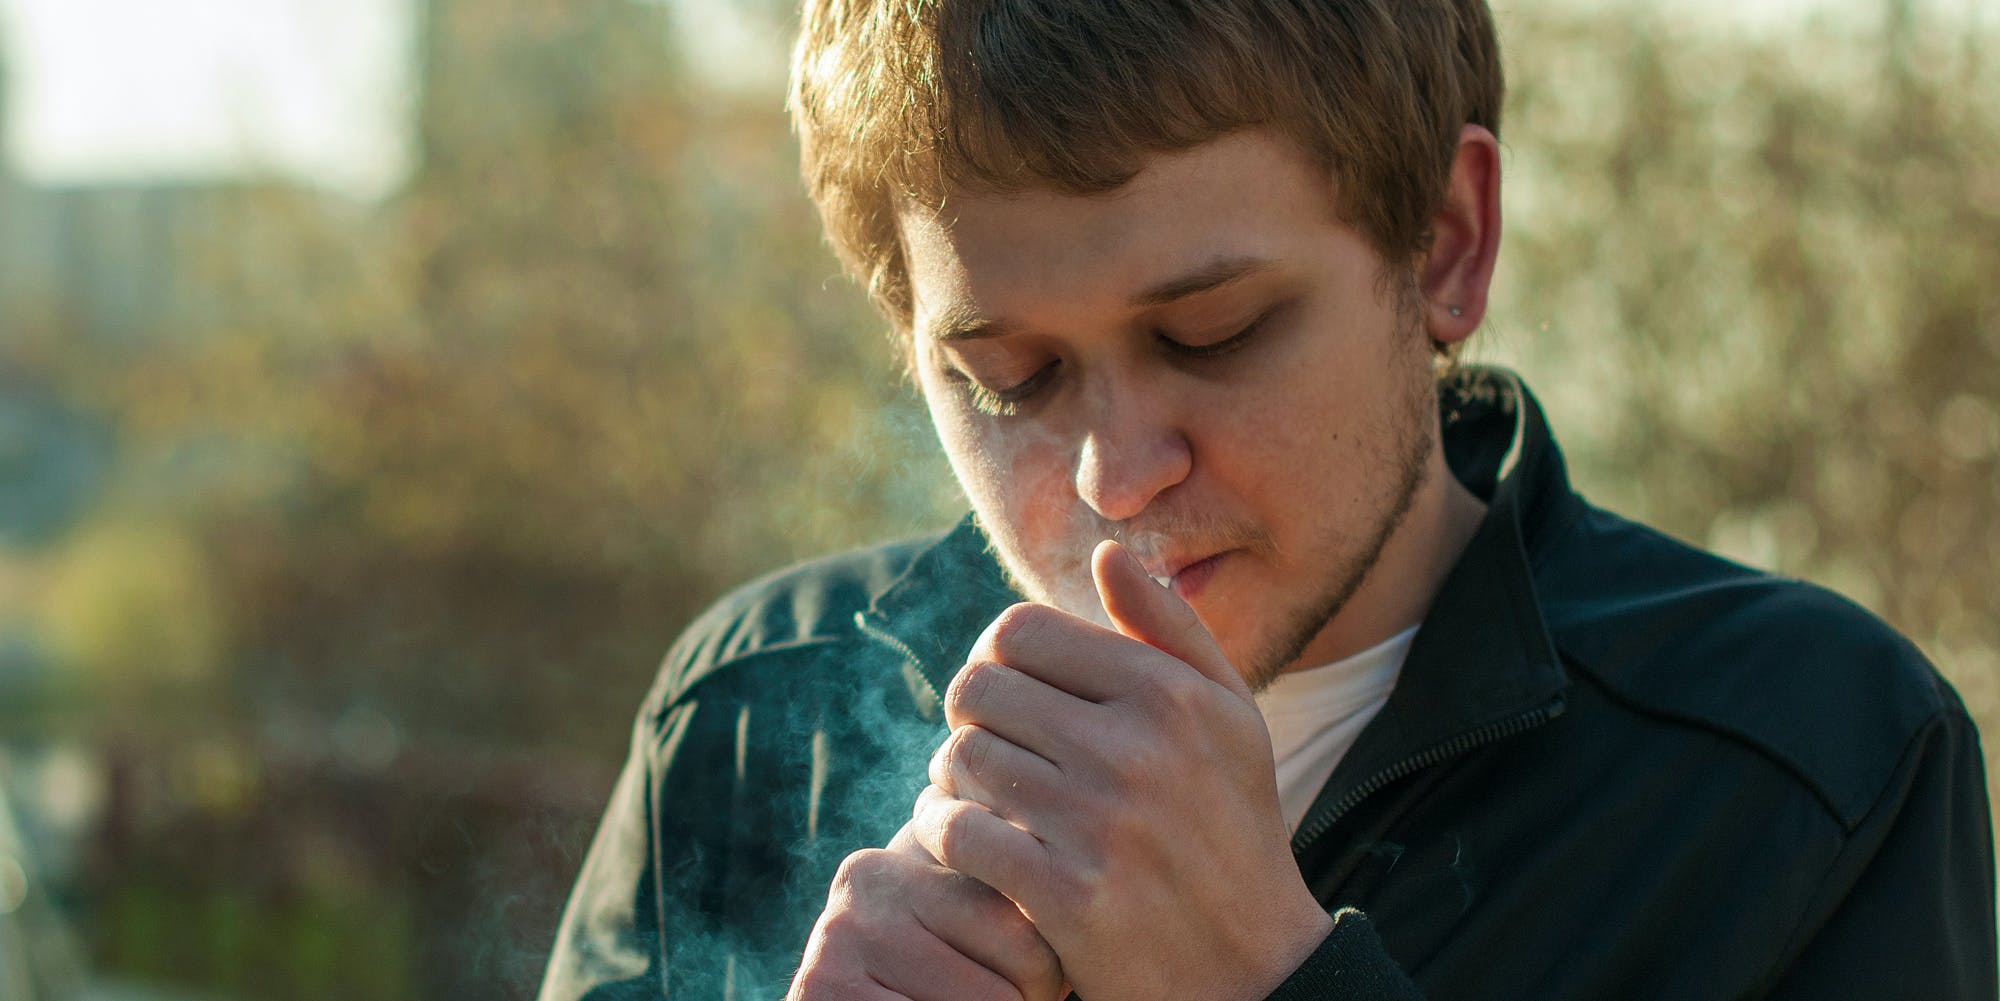 A Step-By-Step Guide To Celebrating 420 When You're Stuck Working